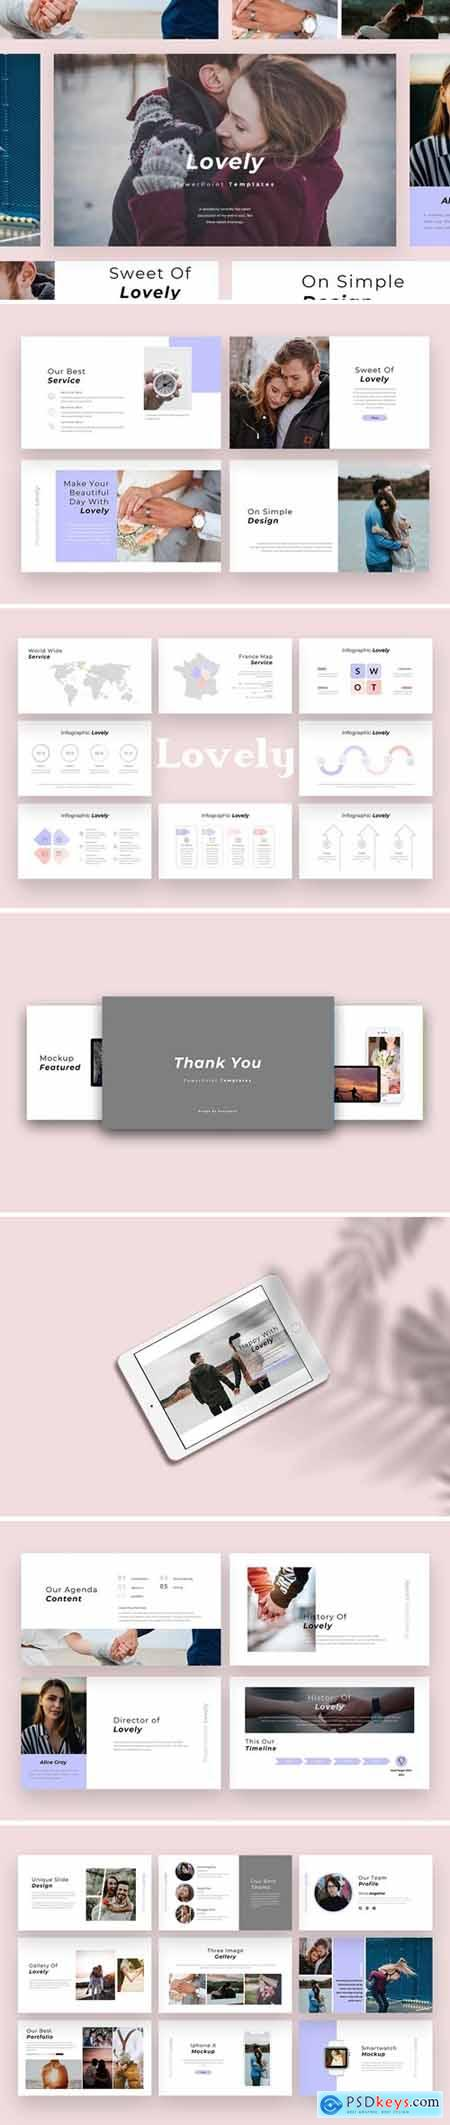 Lovely - Multipurpose Powerpoint, Keynote and Google Slides Templates